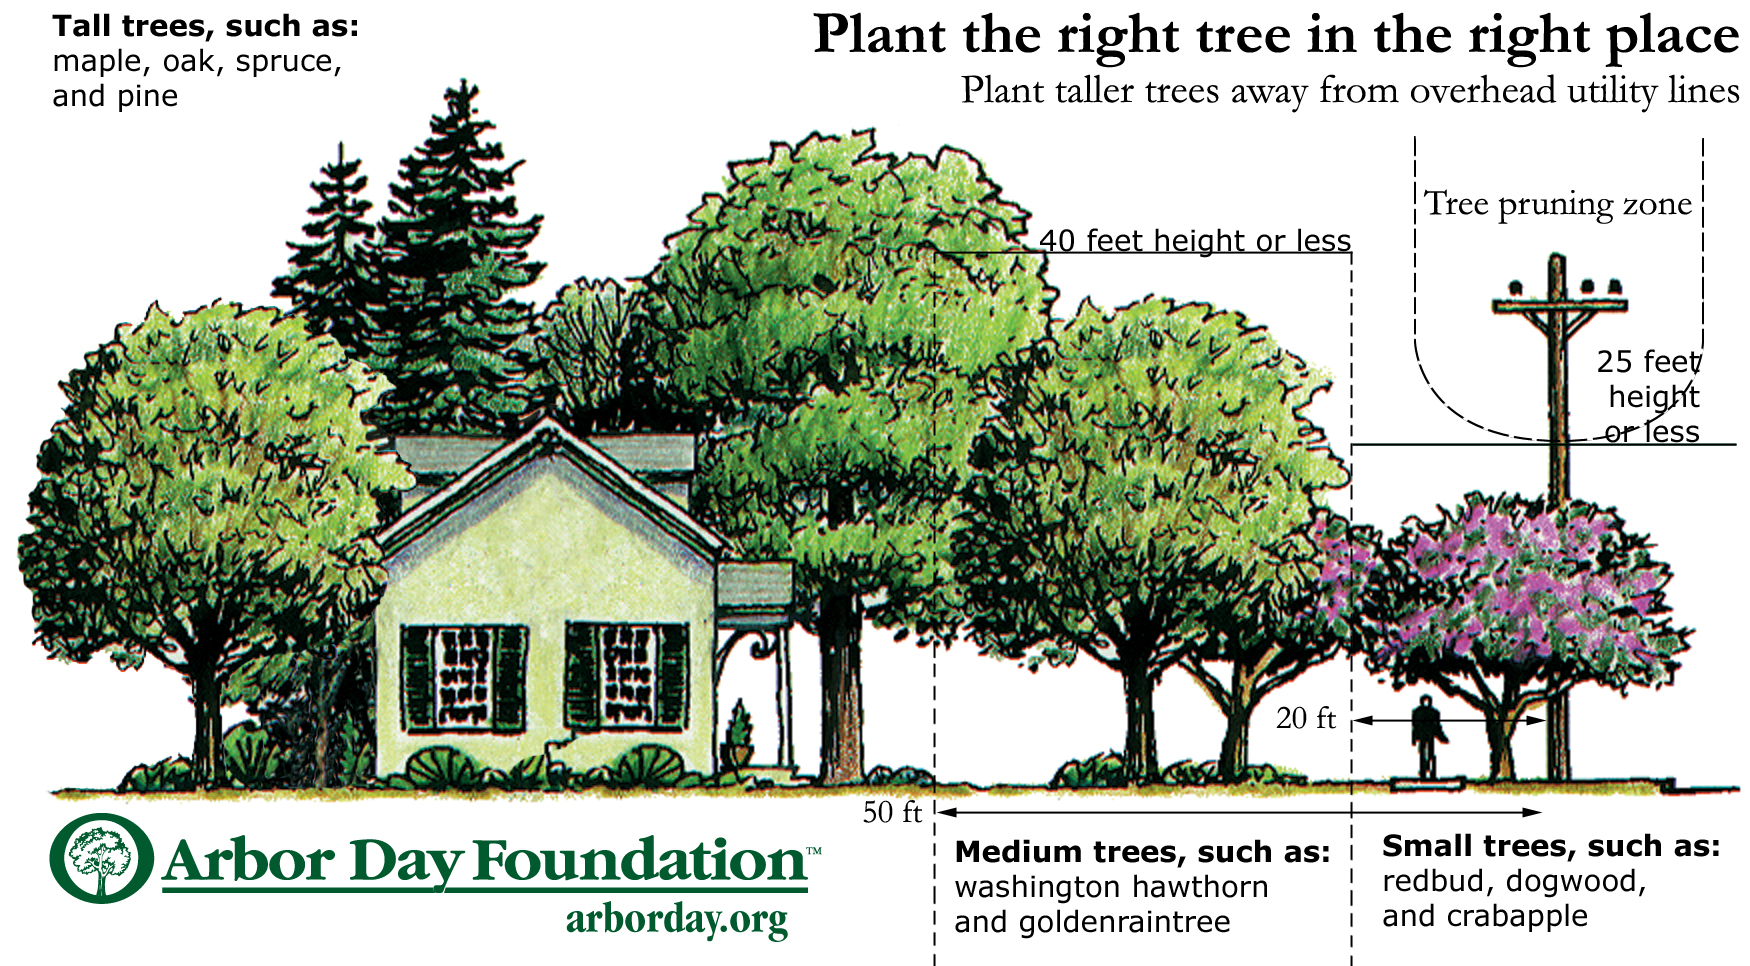 Right of Way Tree Placement Image